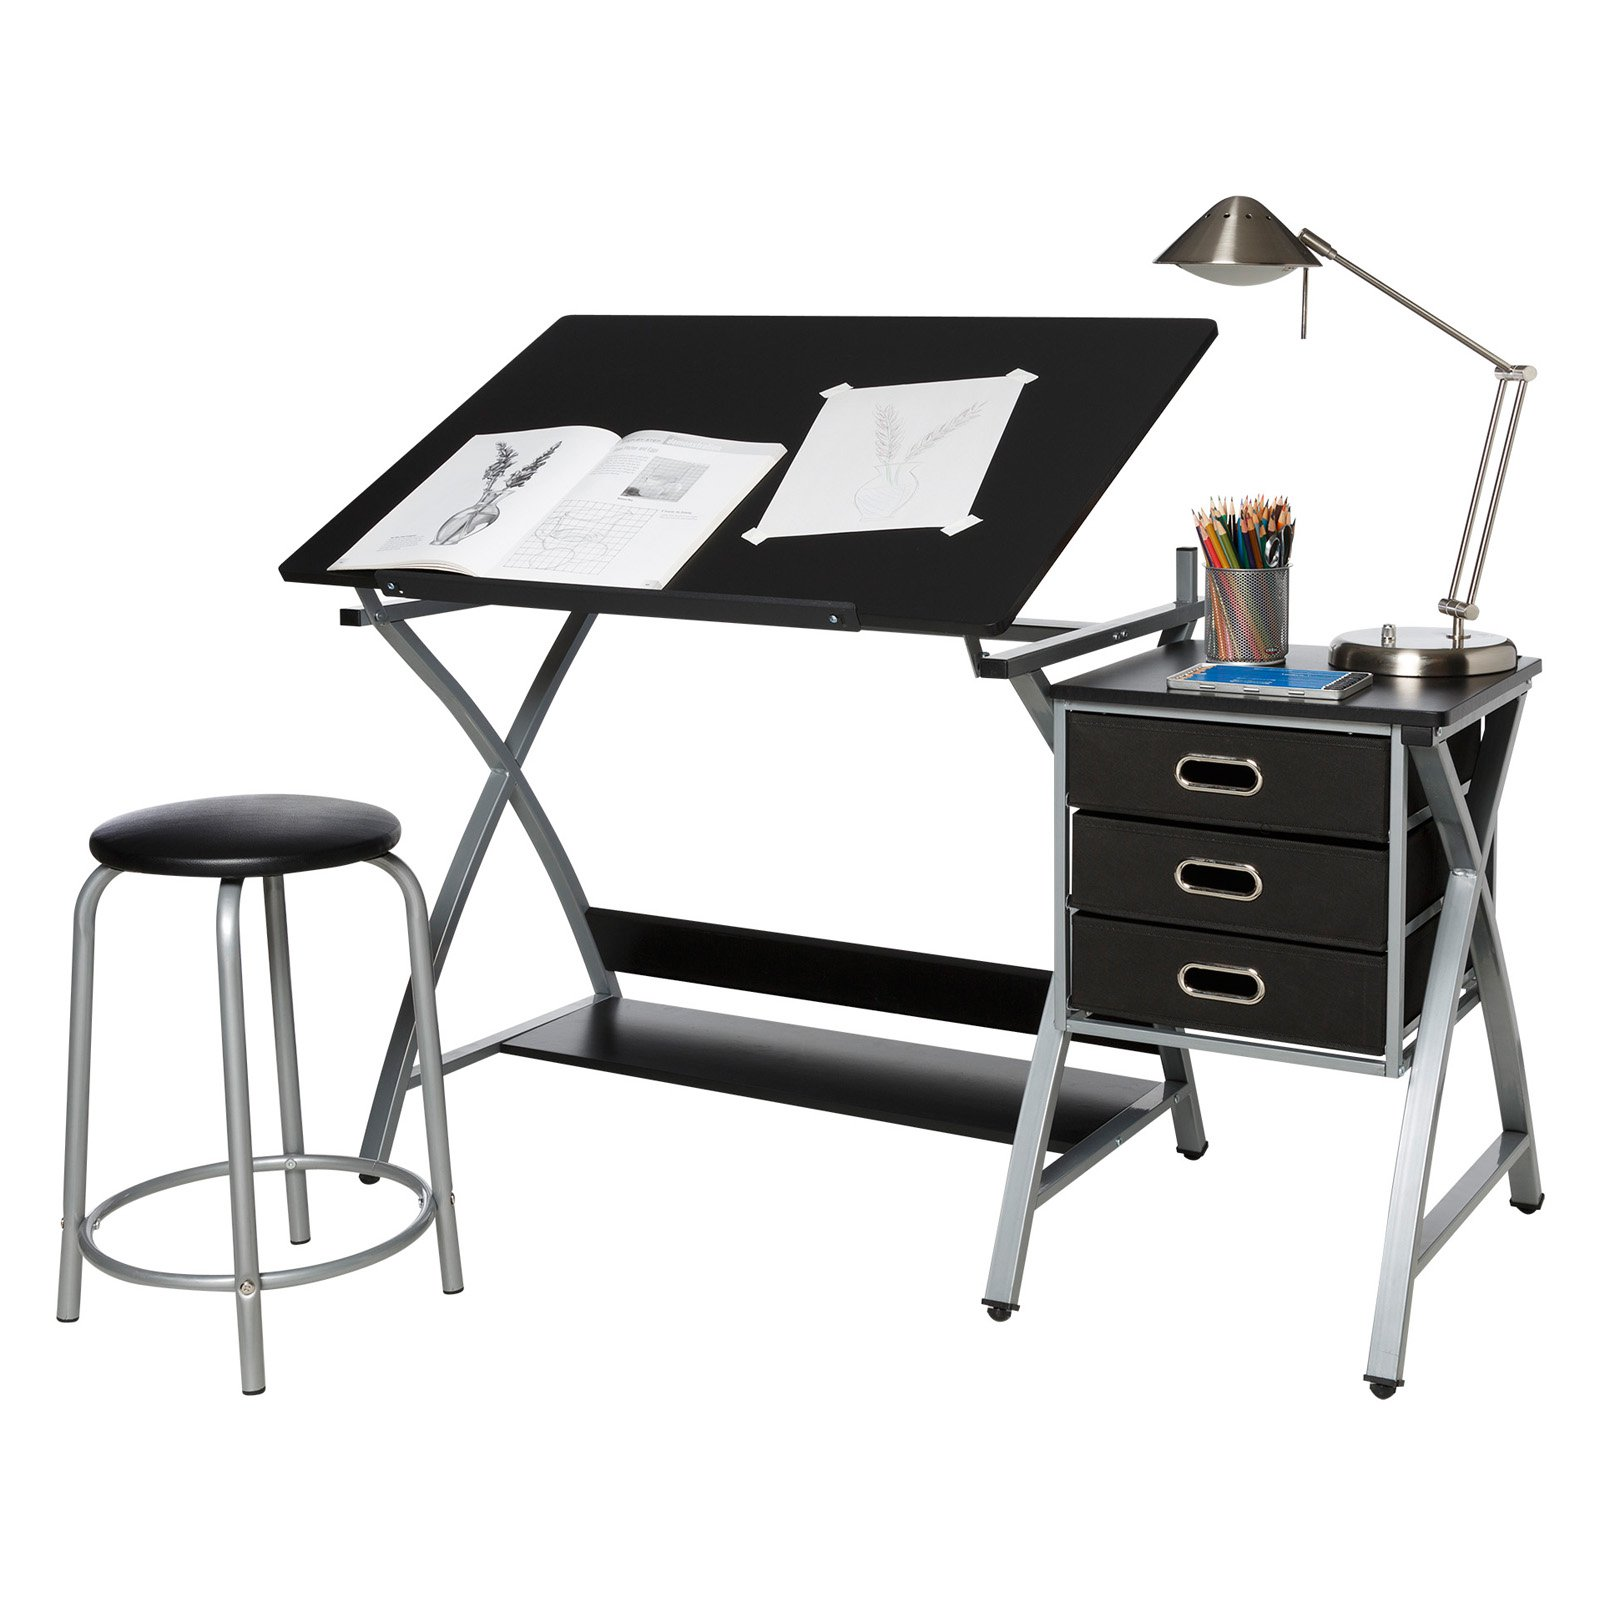 Comfort Products Craft Station with Stool in Black and Silver